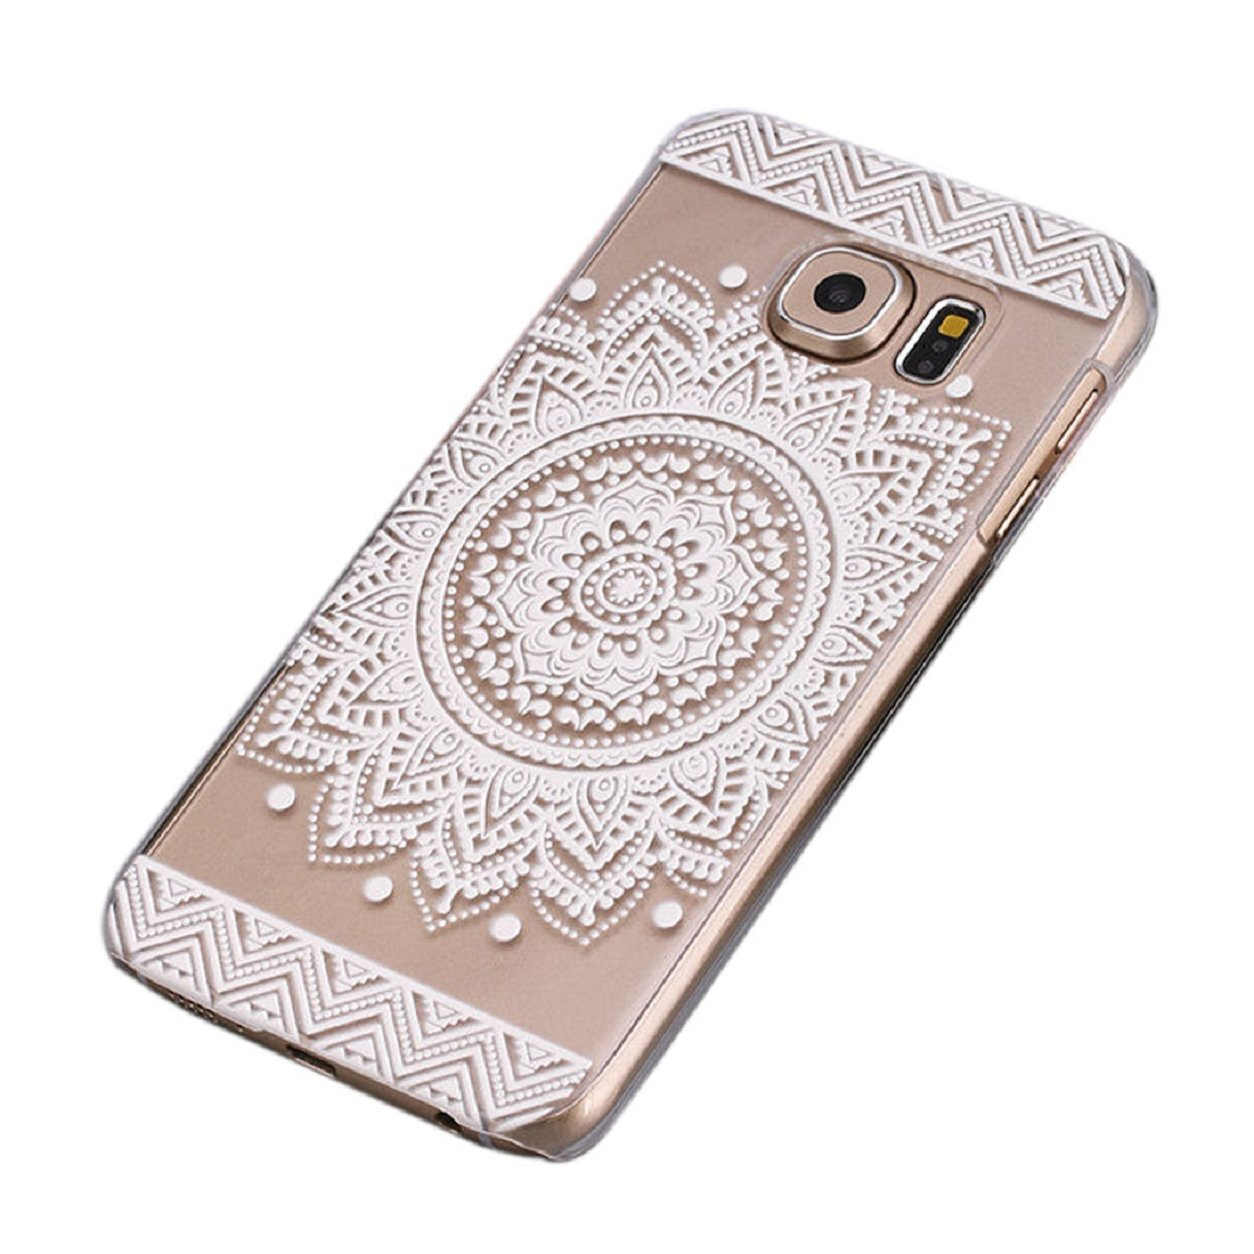 samsung galaxy s6 phone cases for girls. malloom® samsung galaxy s6,campanula mandala floral dream catcher case cover: amazon.co.uk: electronics s6 phone cases for girls g